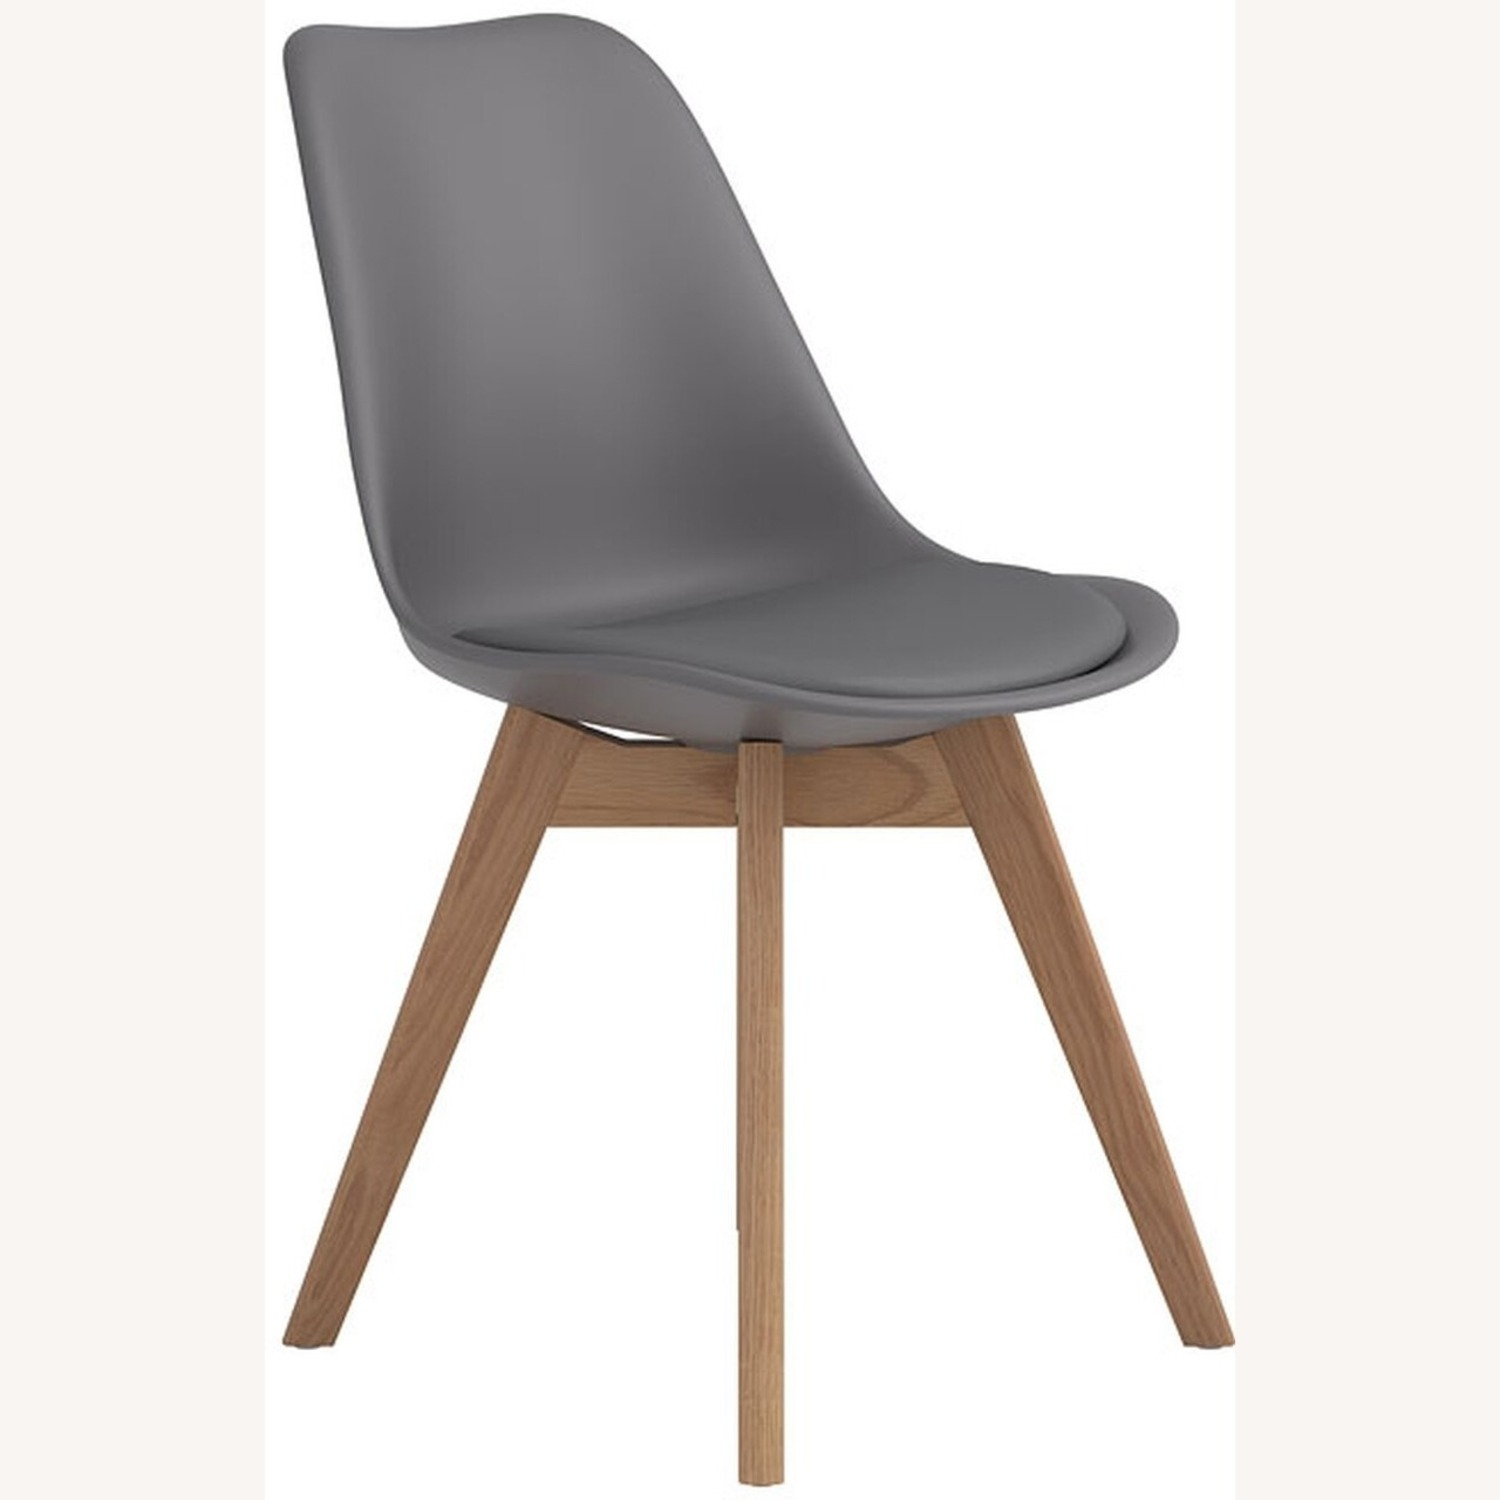 Modern Side Chair In Grey Leatherette - image-0